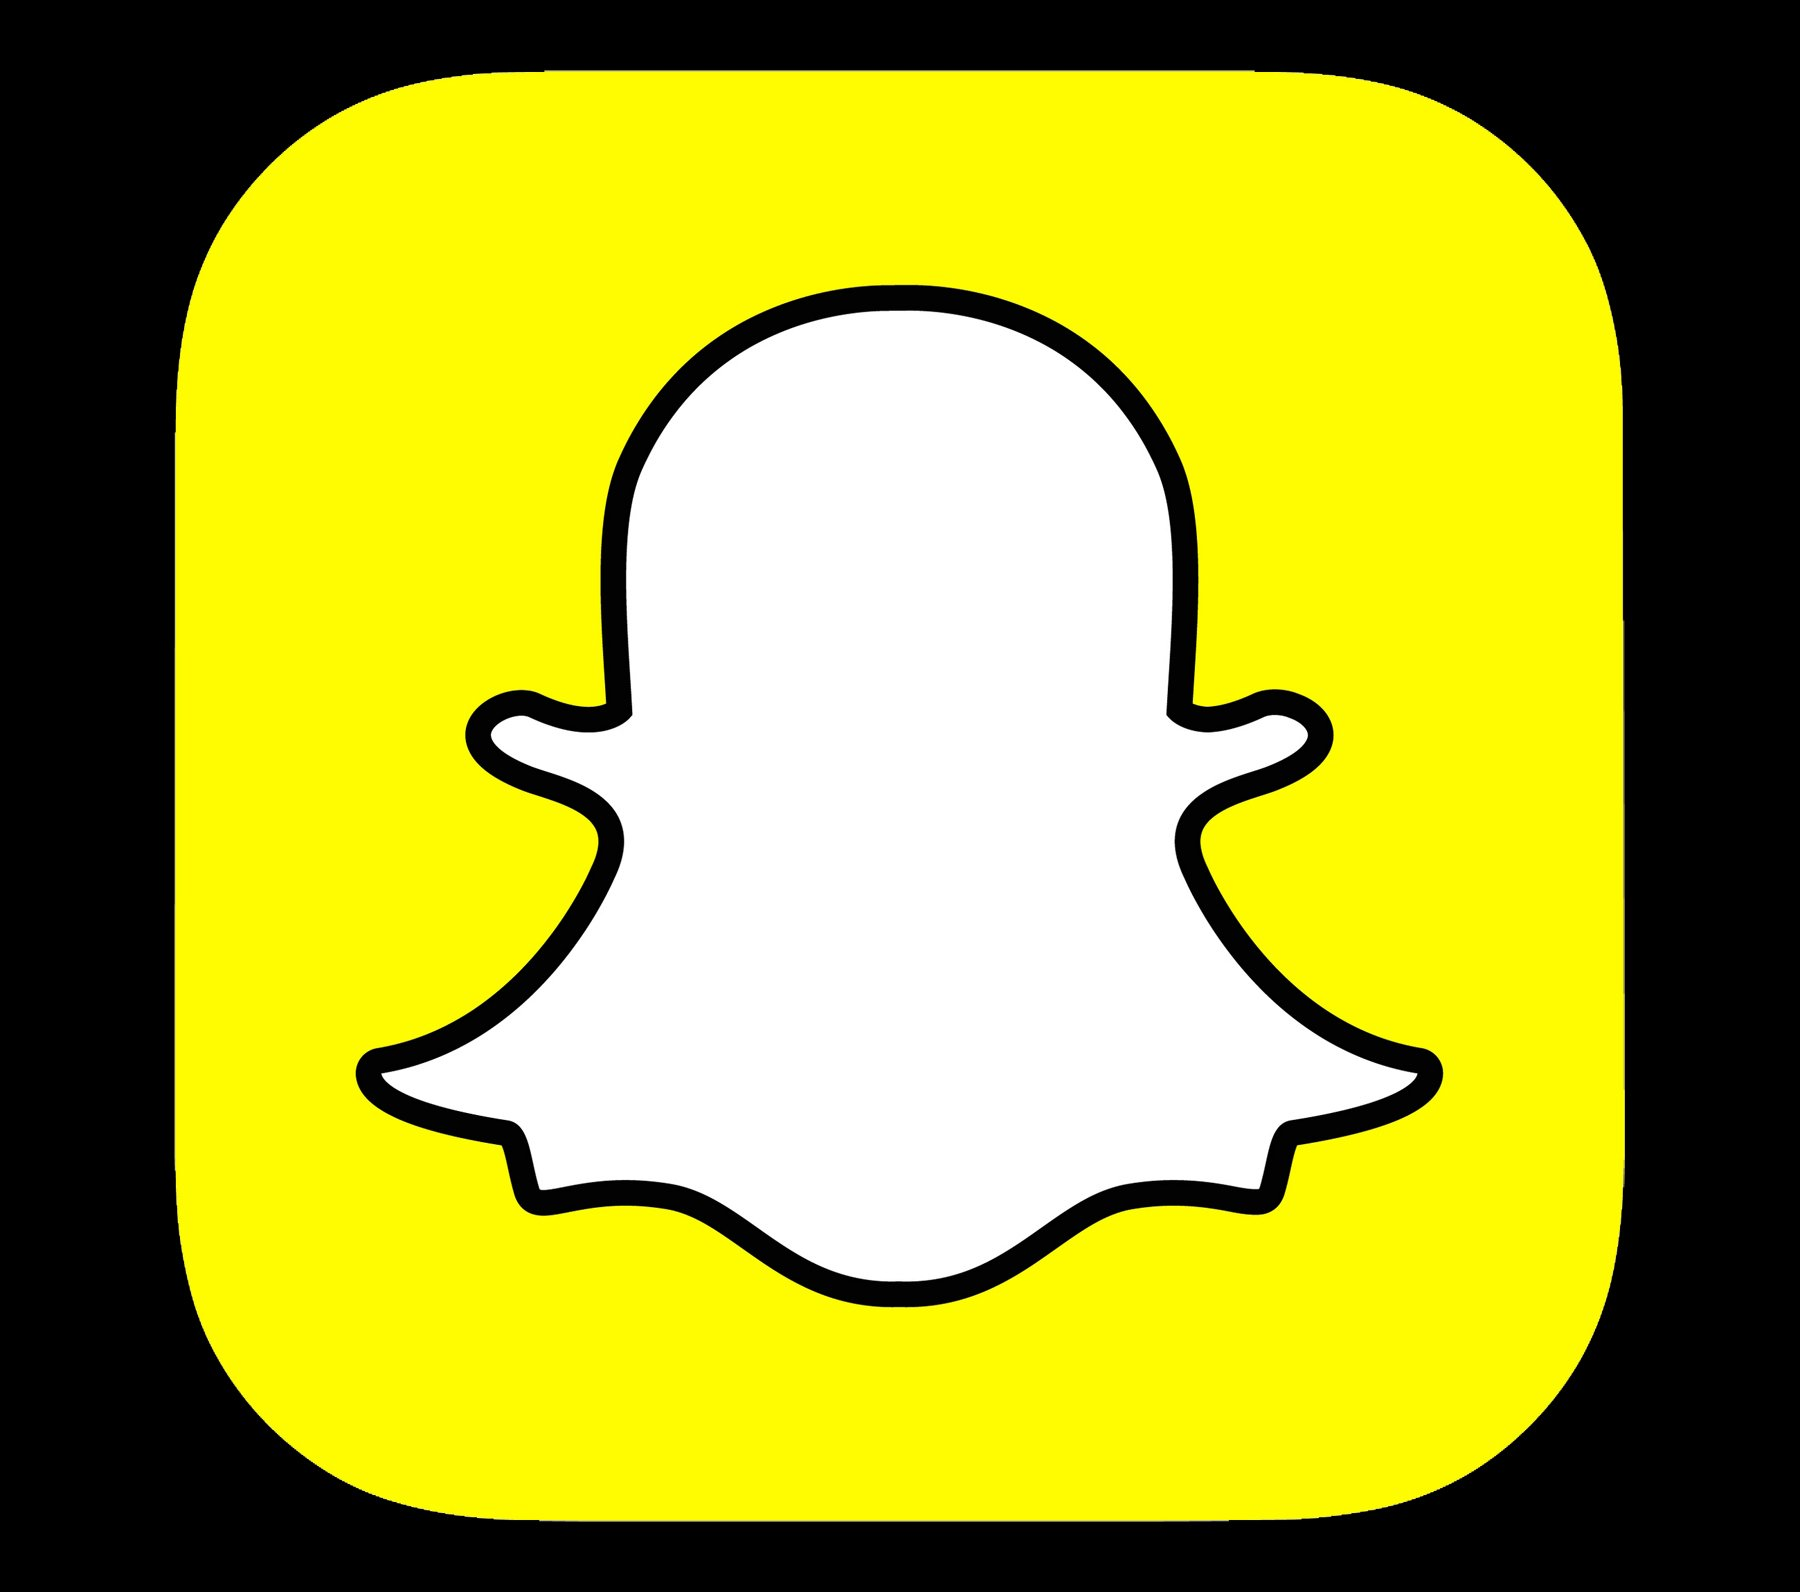 Snapchat Logo Snapchat Symbol Meaning History And Evolution